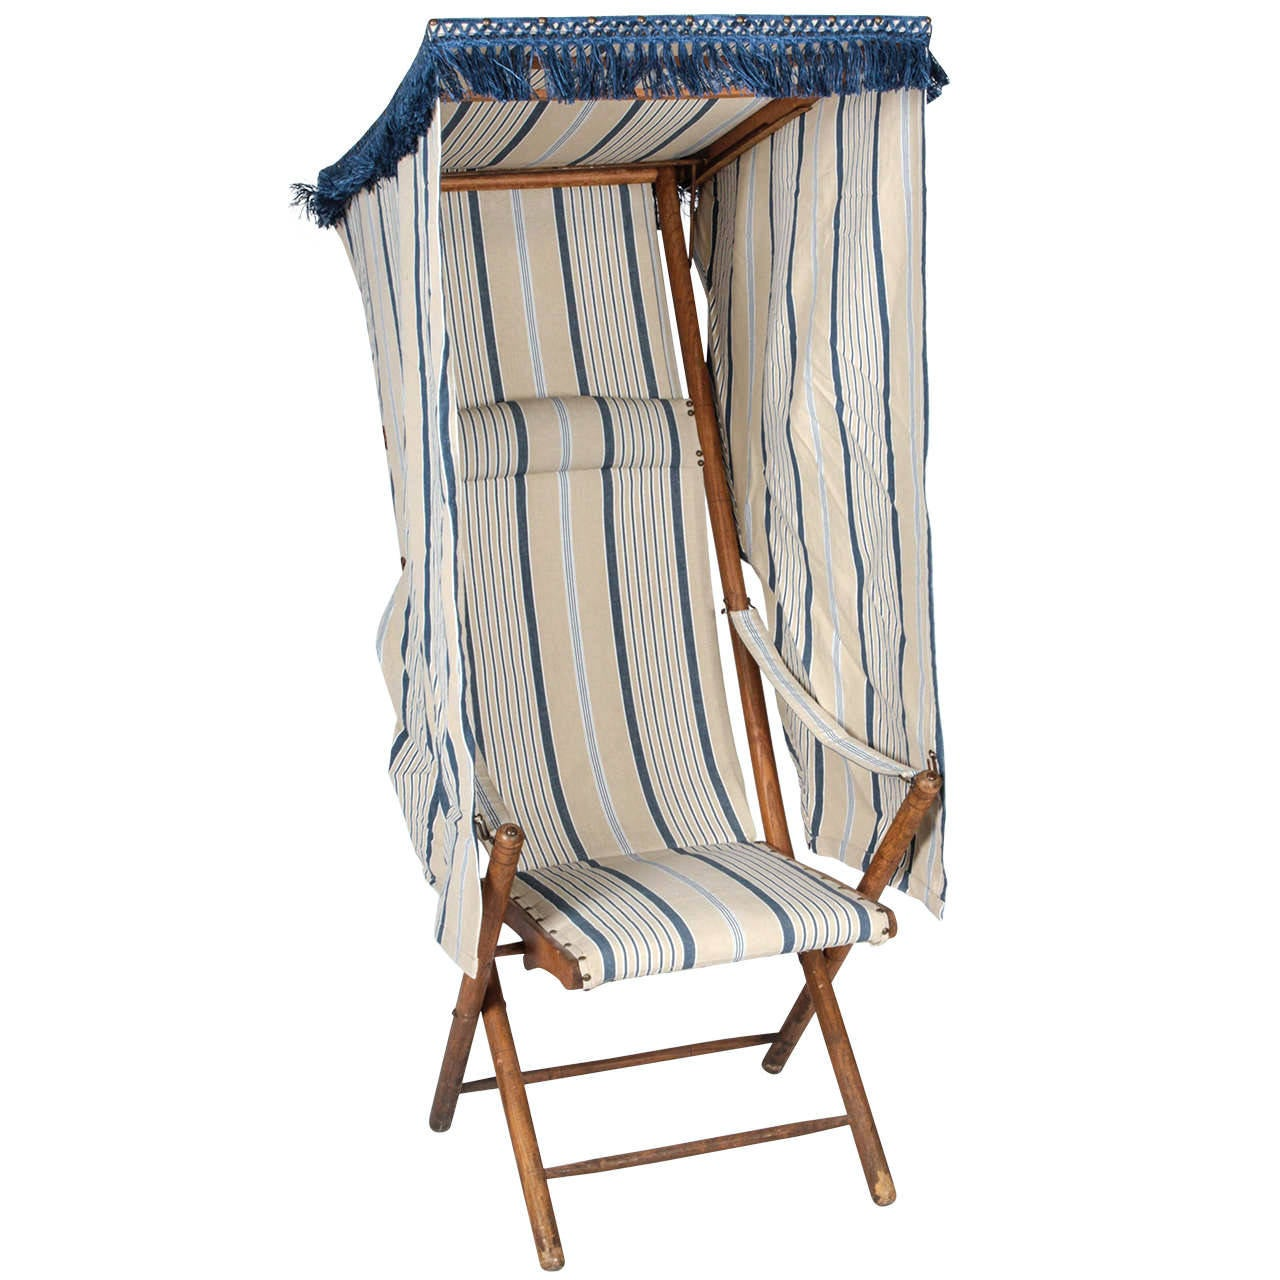 French Beach Chair with Canopy For Sale  sc 1 st  1stDibs : beach chair canopy - memphite.com